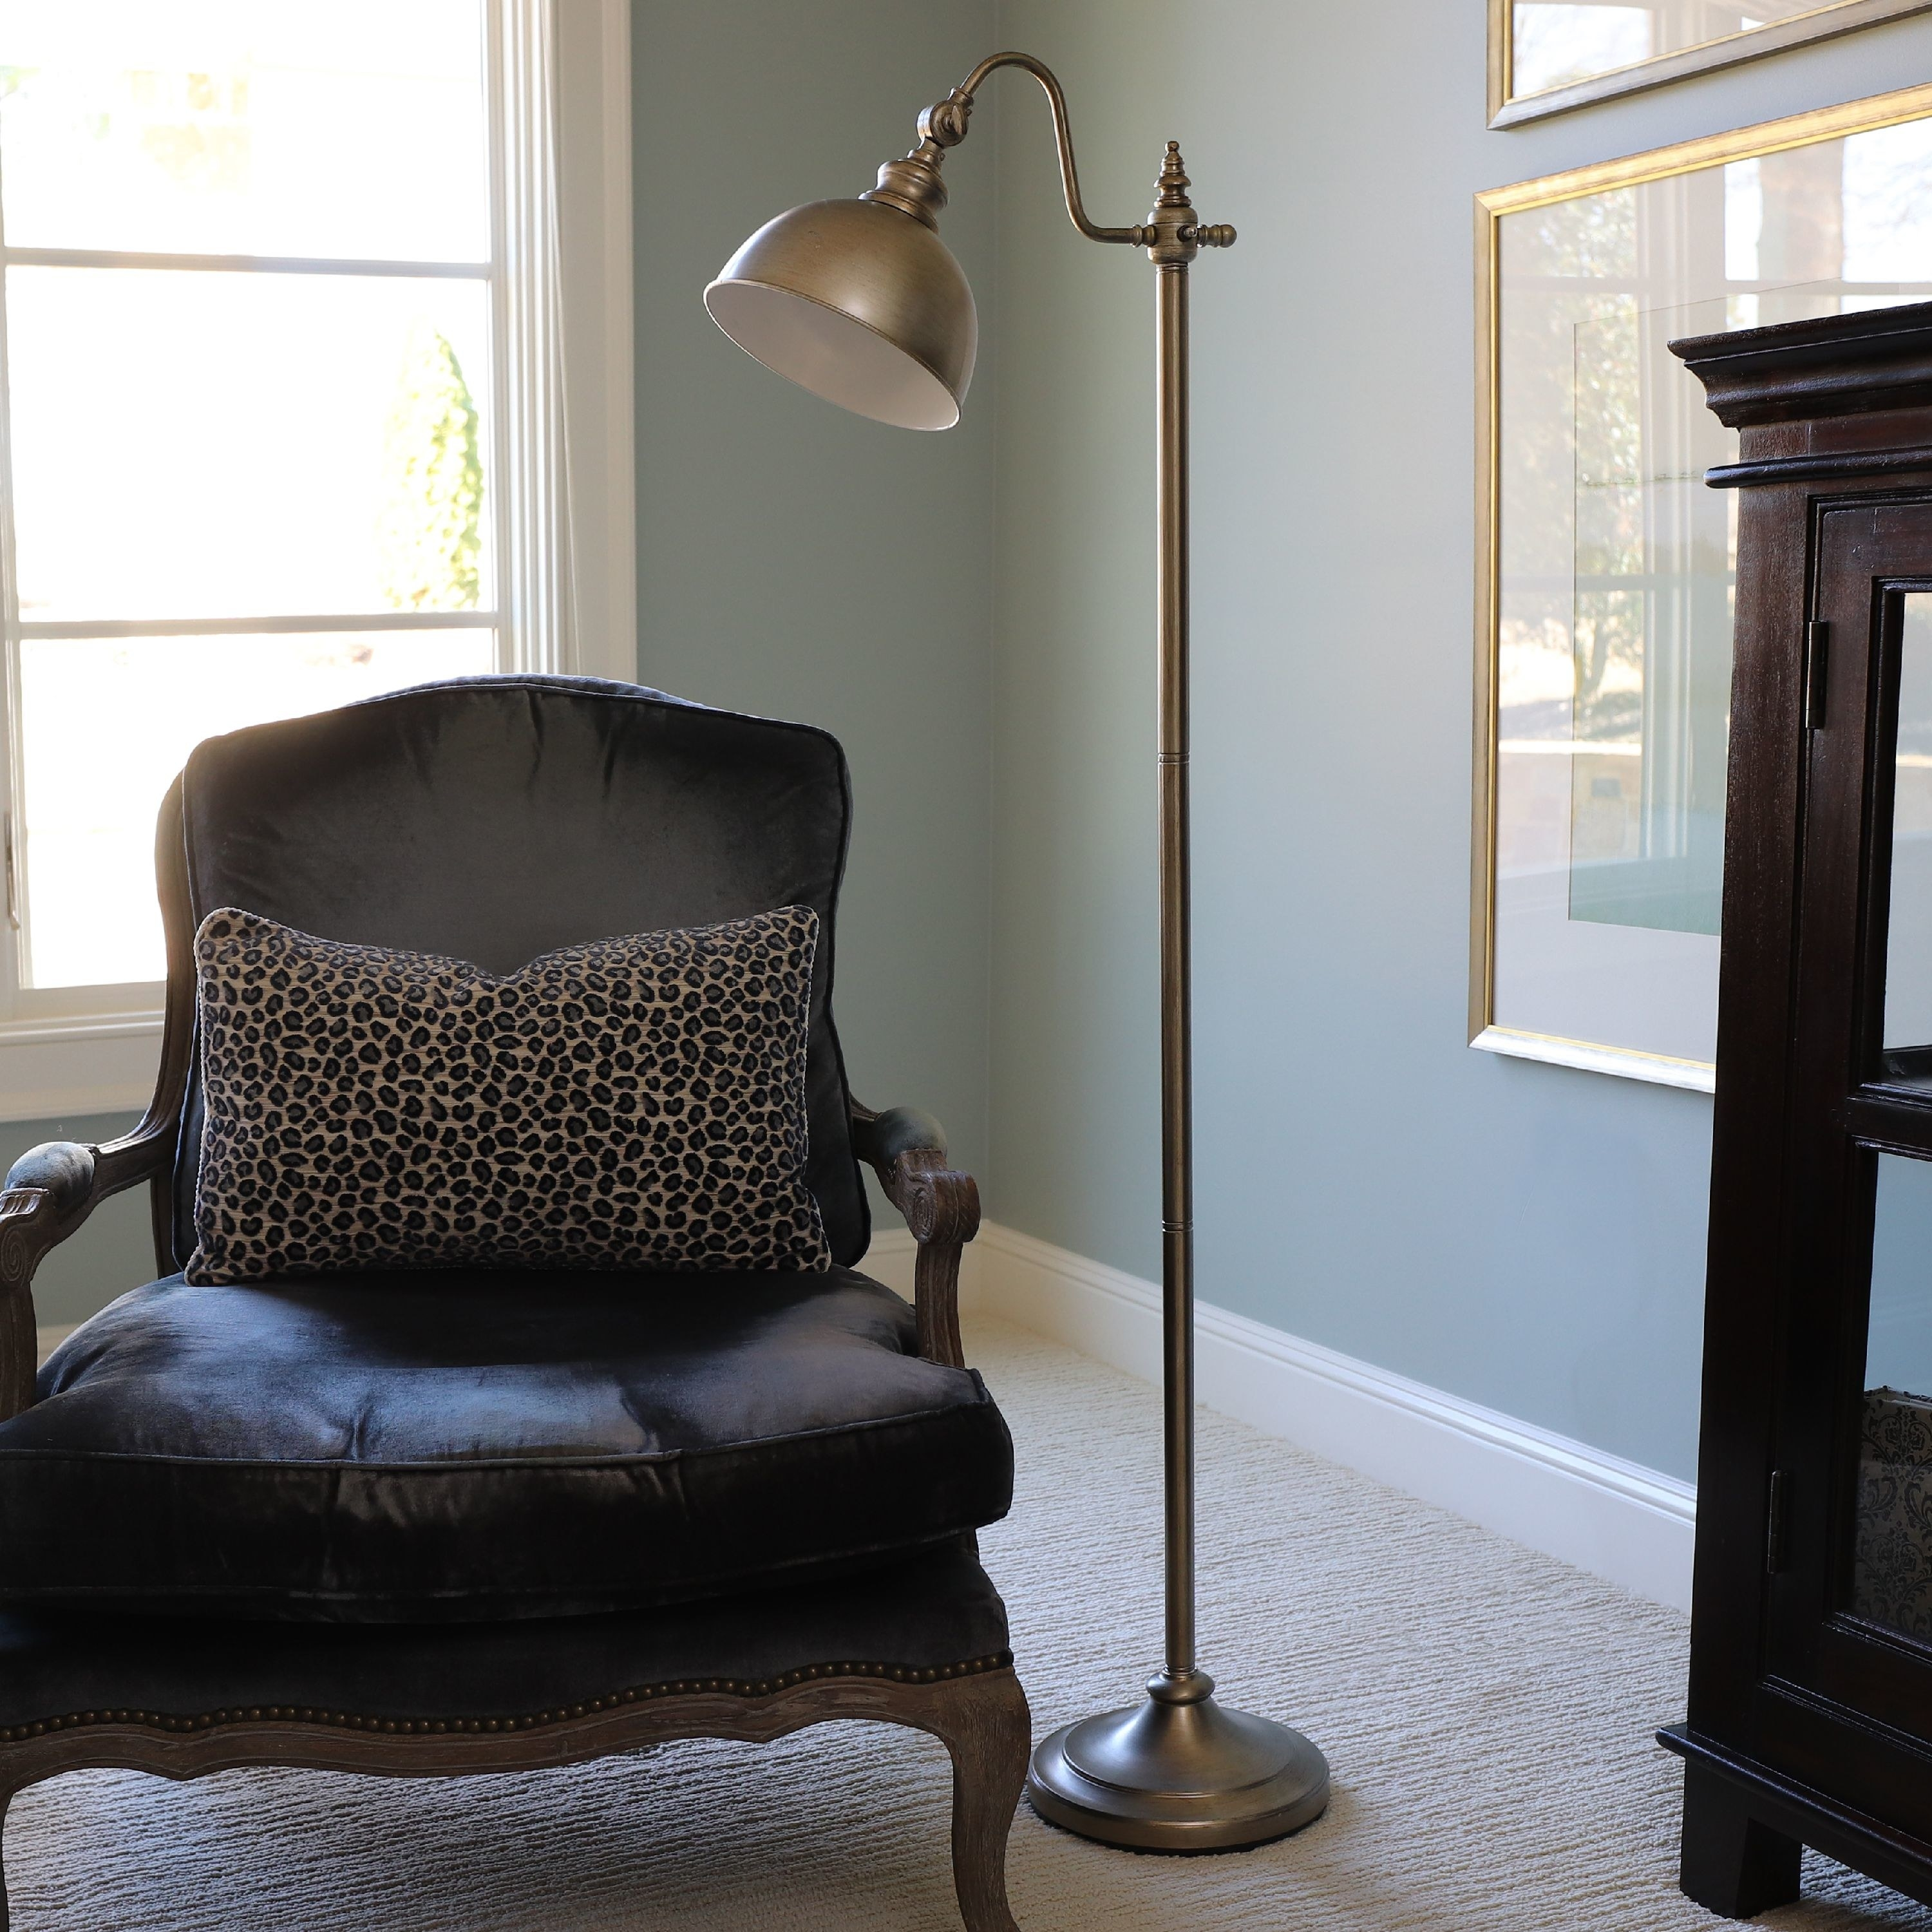 A 56-inch tall brass floor lamp with a round base